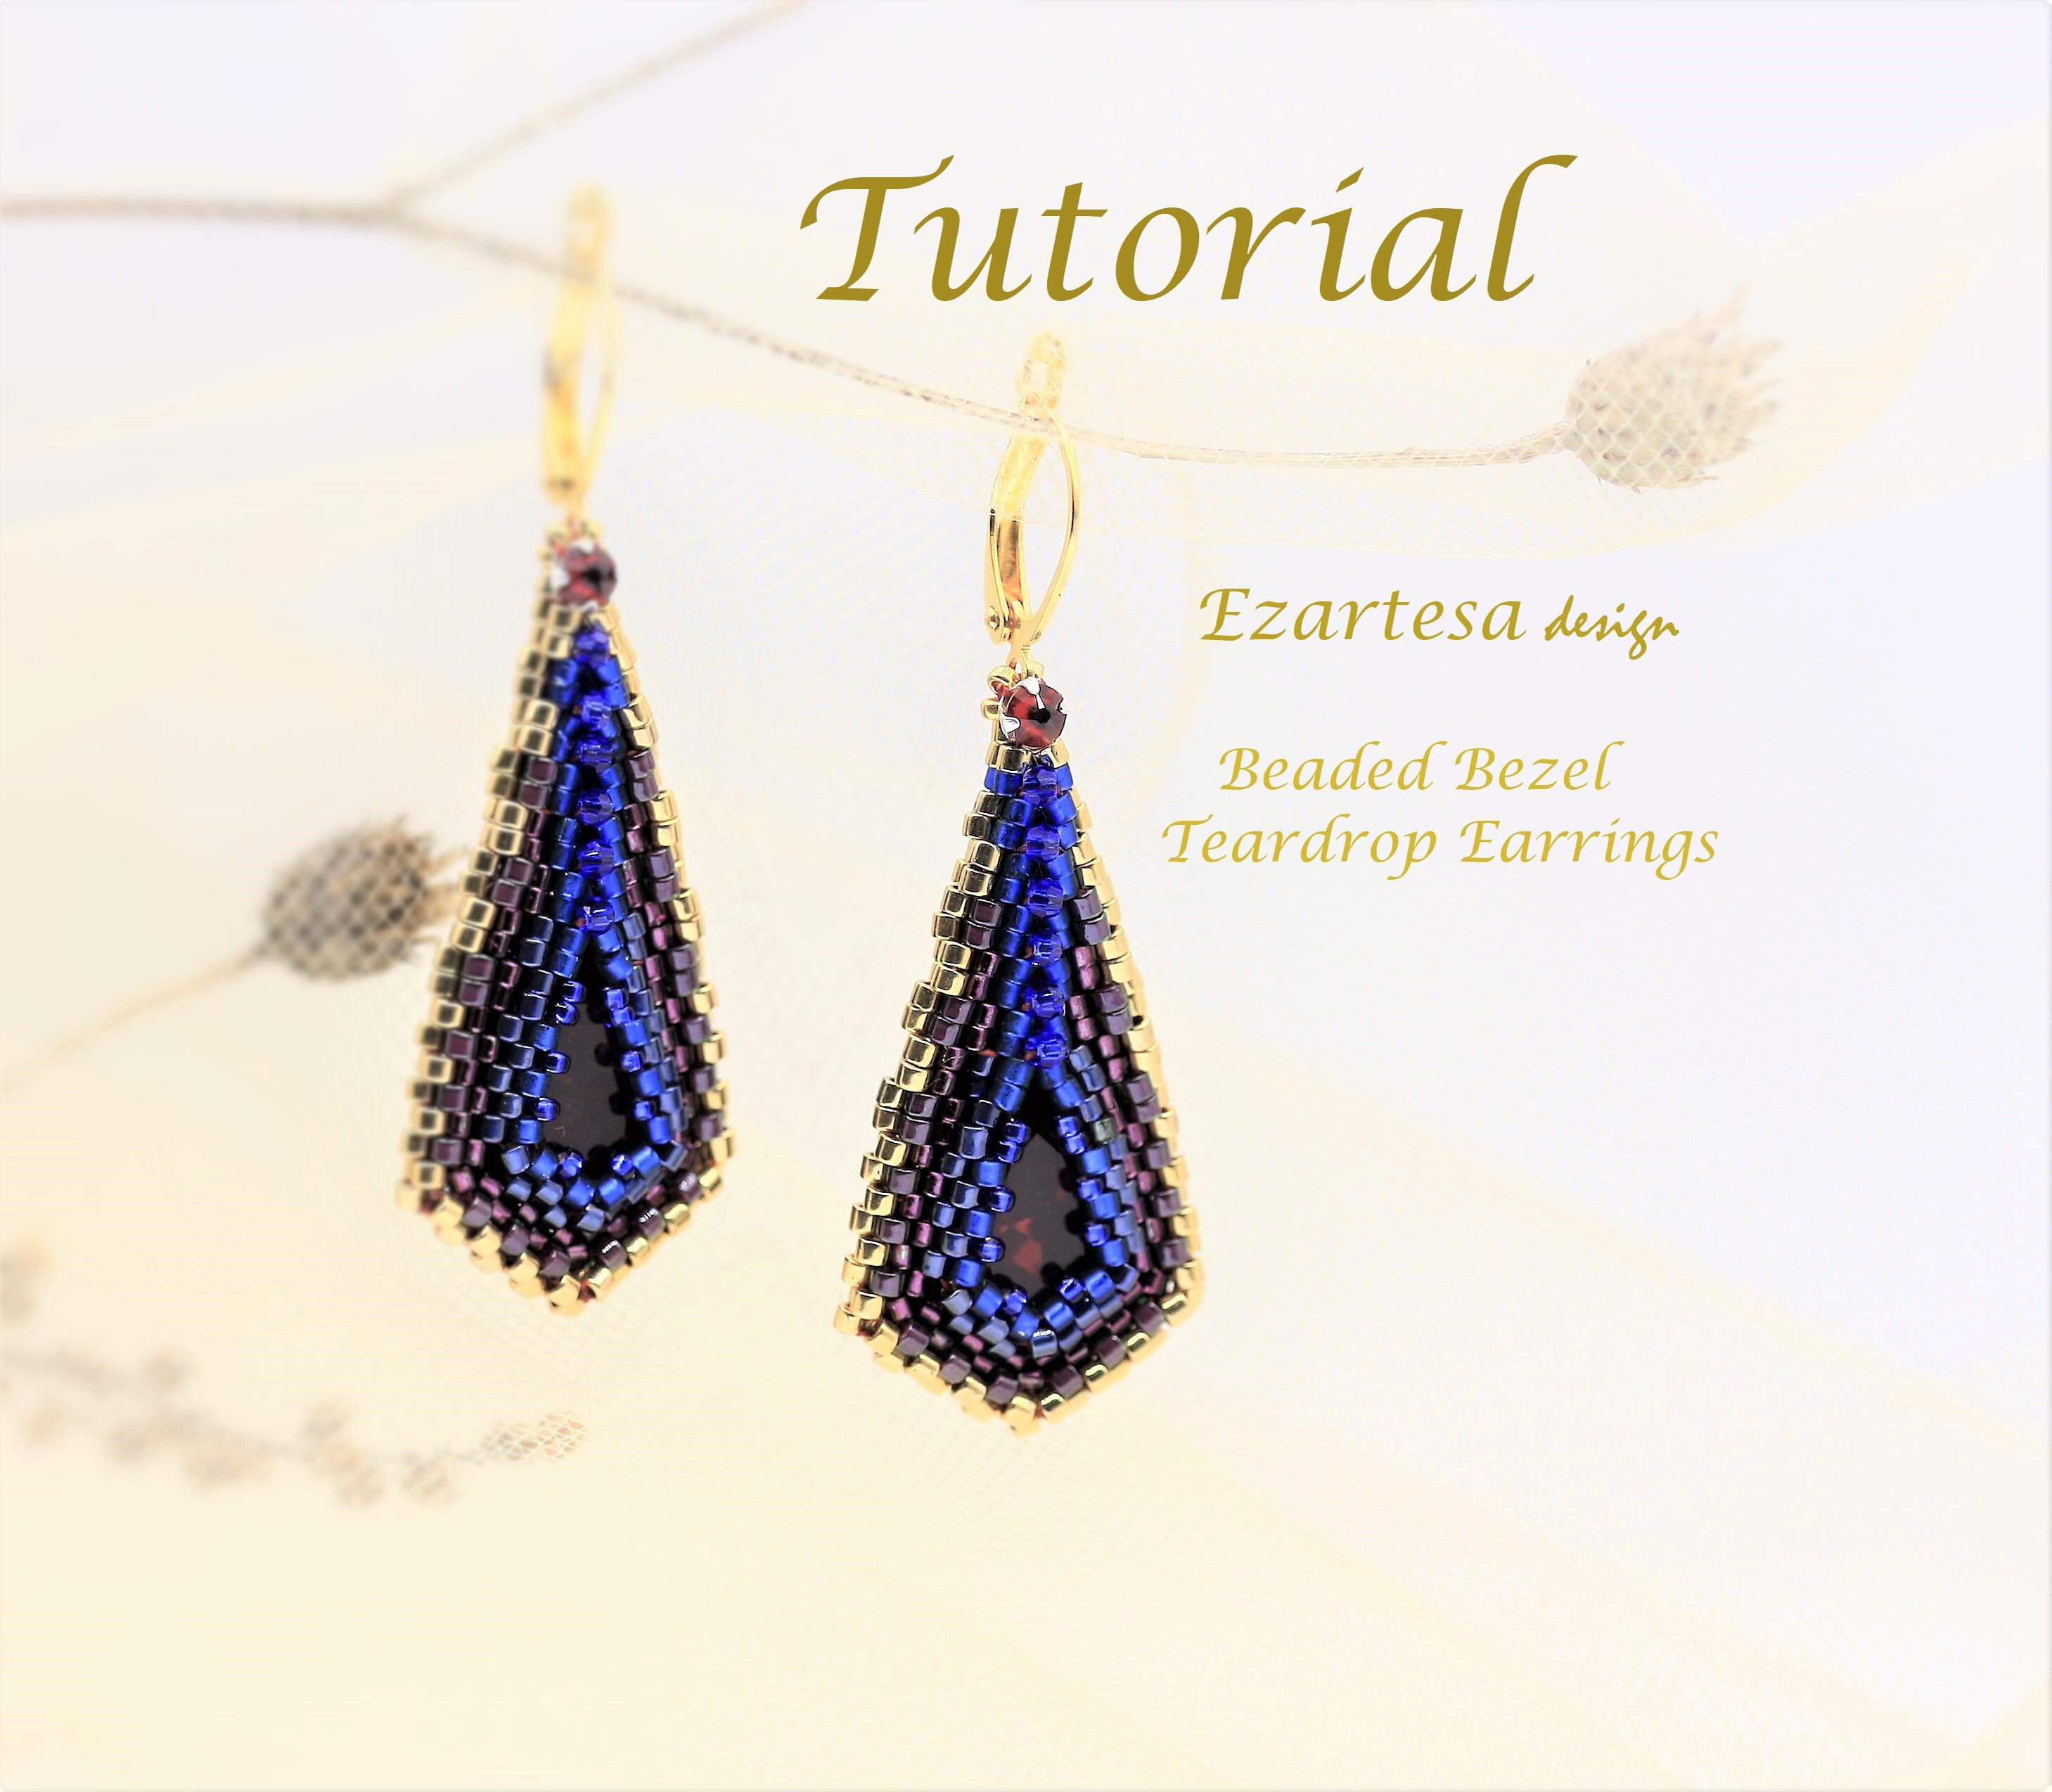 Beaded Bezel Teardrop Earrings Tutorial With Glass Seed Beads And